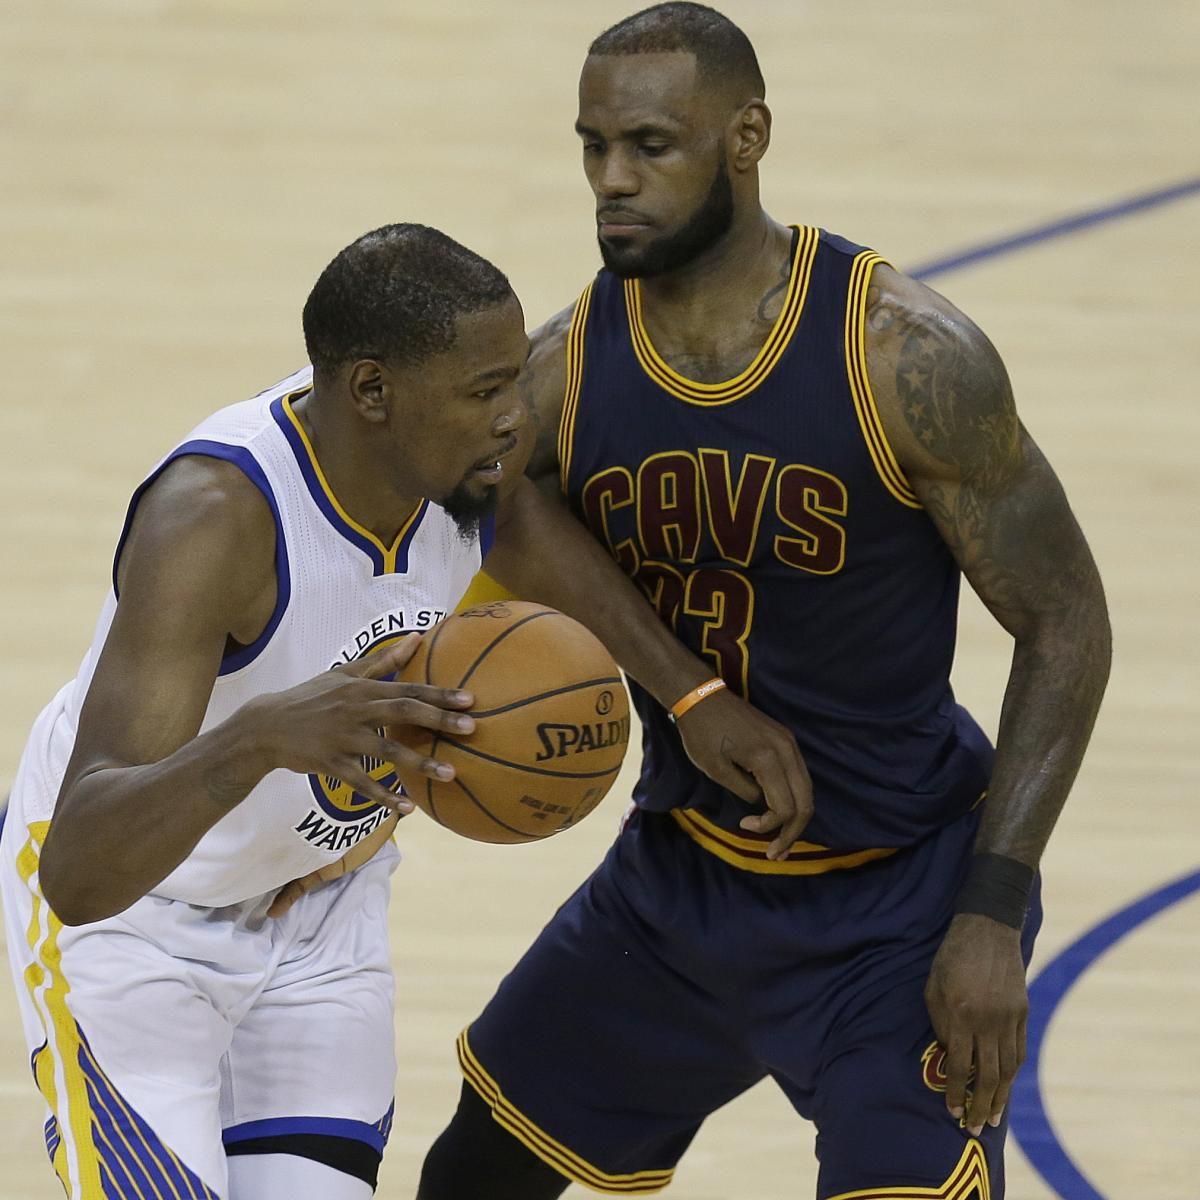 Warriors Game Live Stream Free Espn: LeBron James, Kevin Durant Reportedly Collaborated On Hip